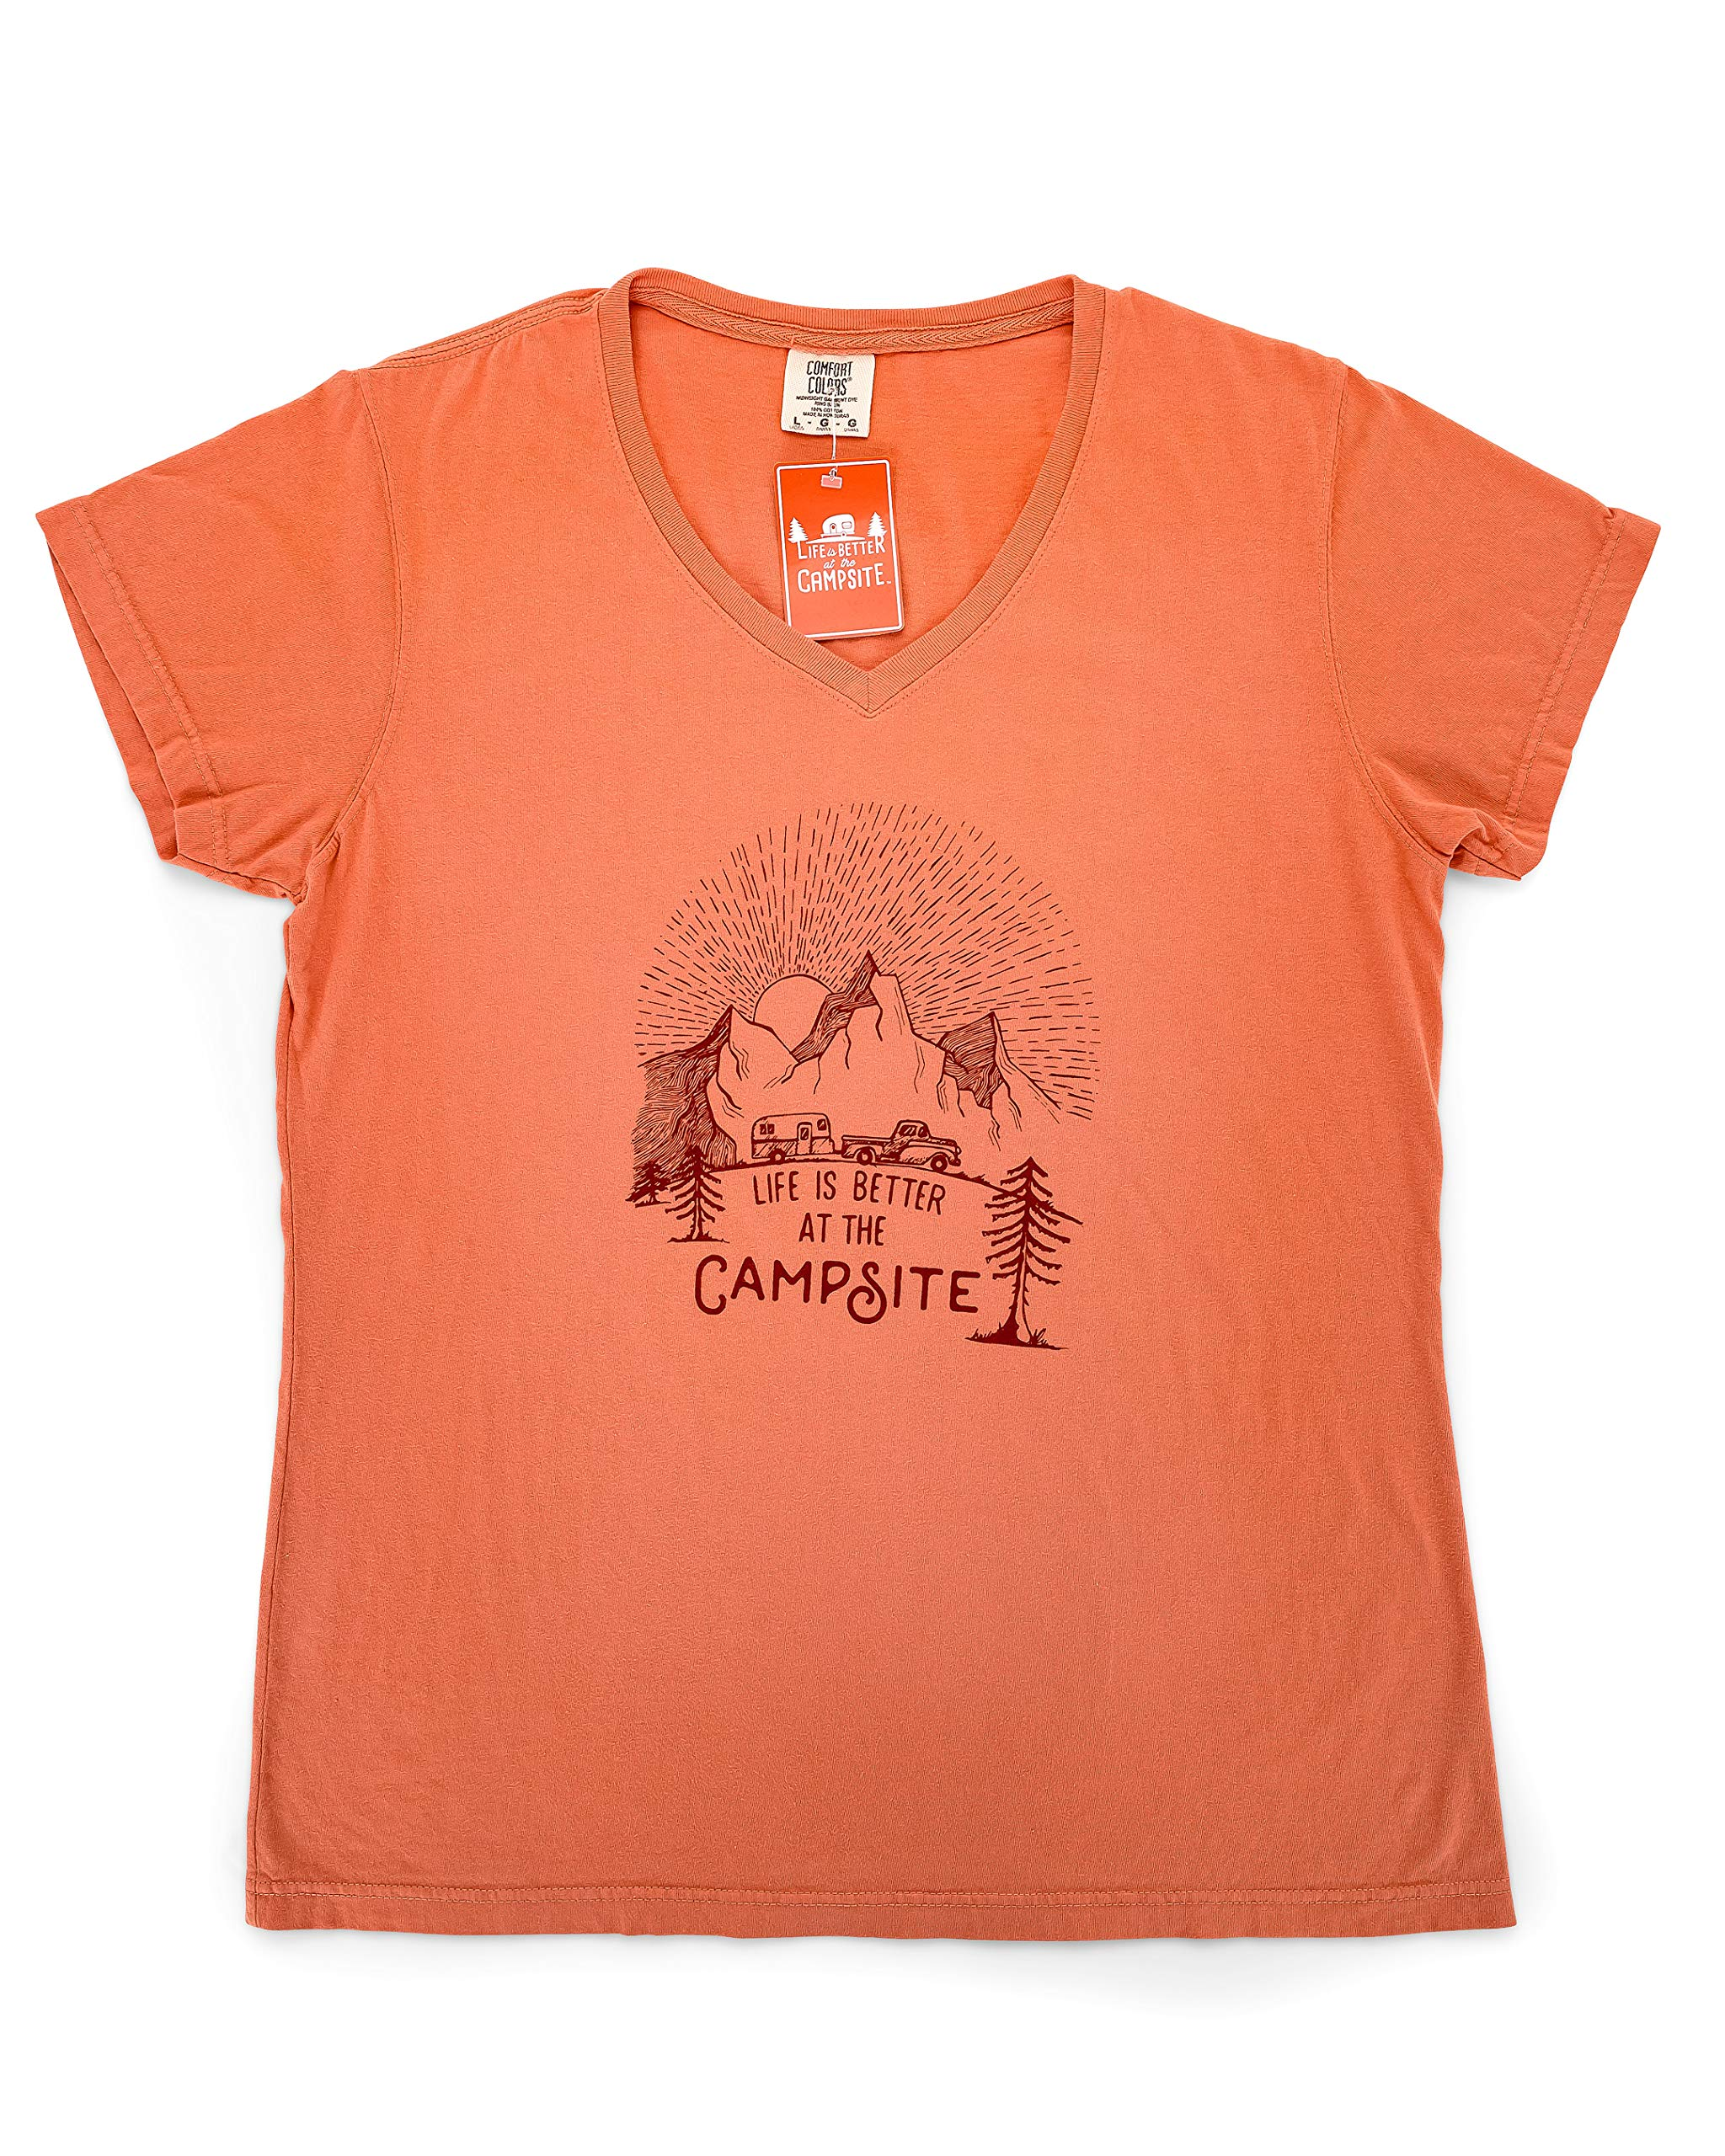 Camco Terracotta Life is Better at The Campsite Sunrise Sketch Print V-Neck Shirt, 100% Ring Spun Cotton Tee, Small (53277)